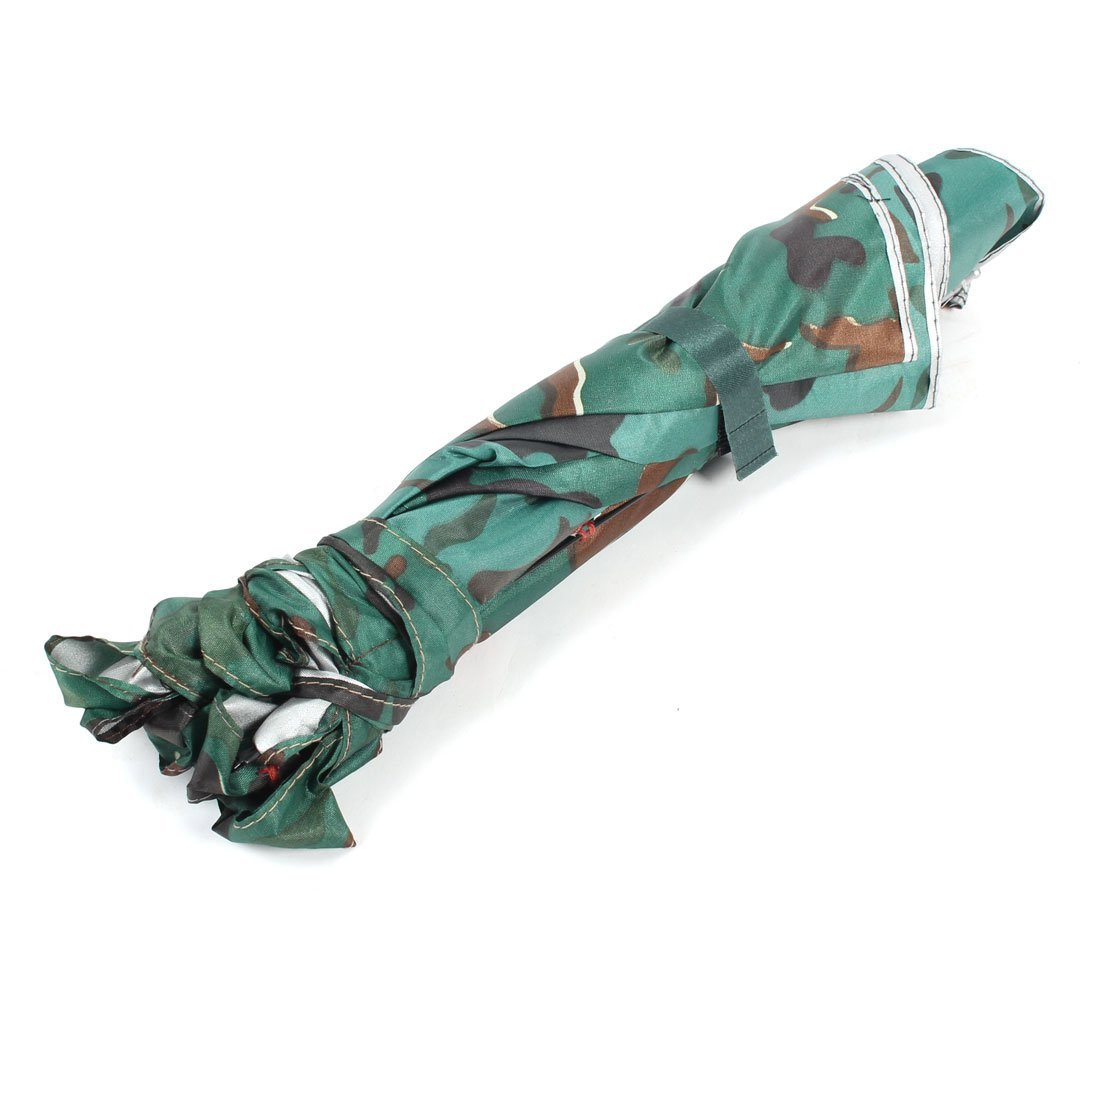 Amazon.com: Mãos de pesca livre 8 costelas Camouflage Cap Hat Umbrella Poliéster: Home & Kitchen